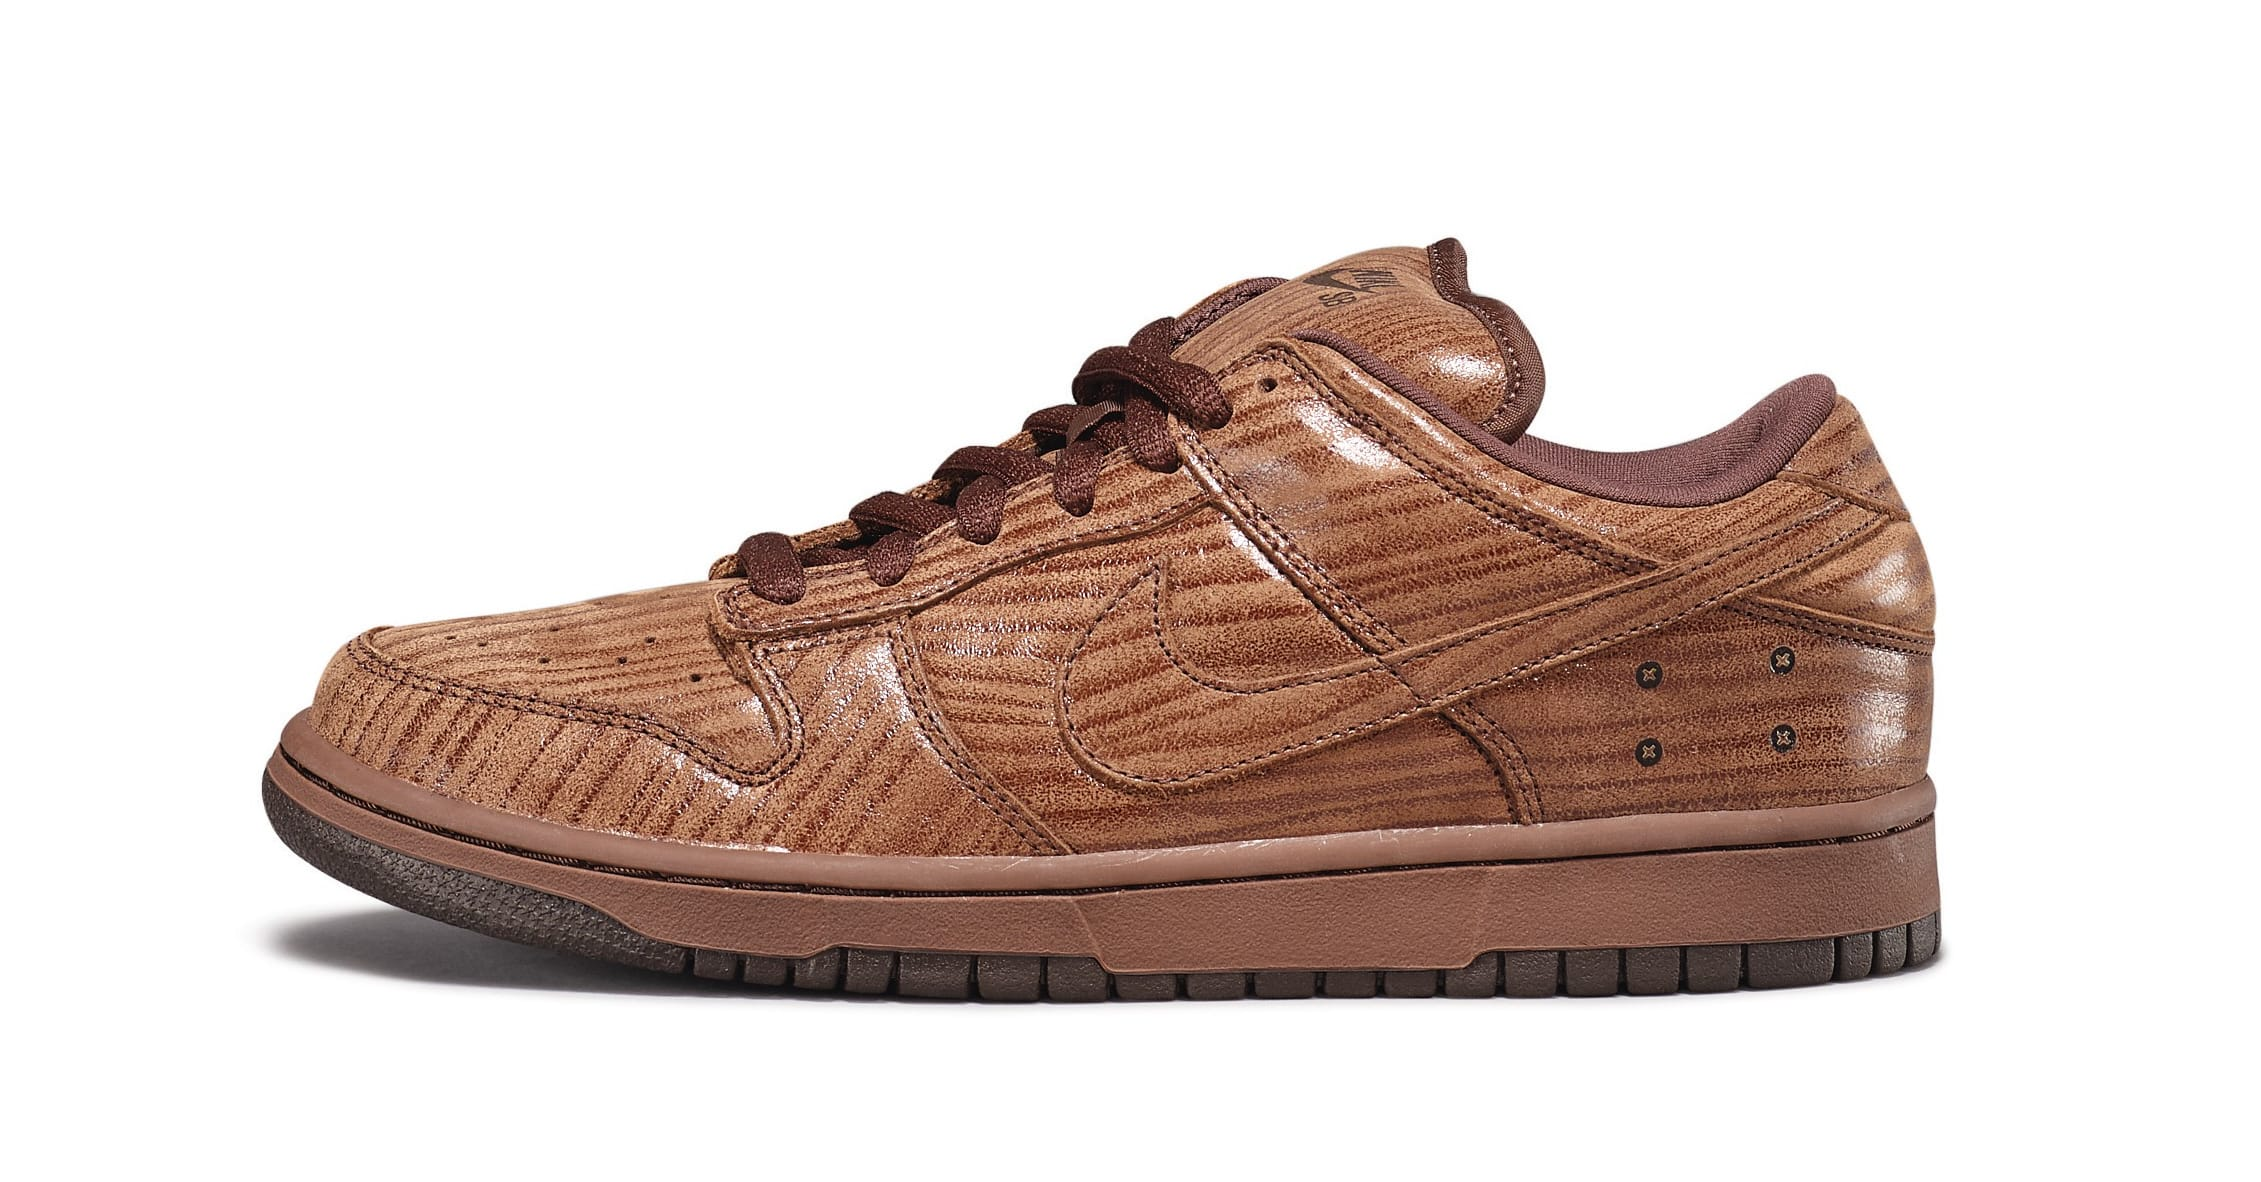 Michael Lau x Nike SB Dunk Low 'Gardener Wood'